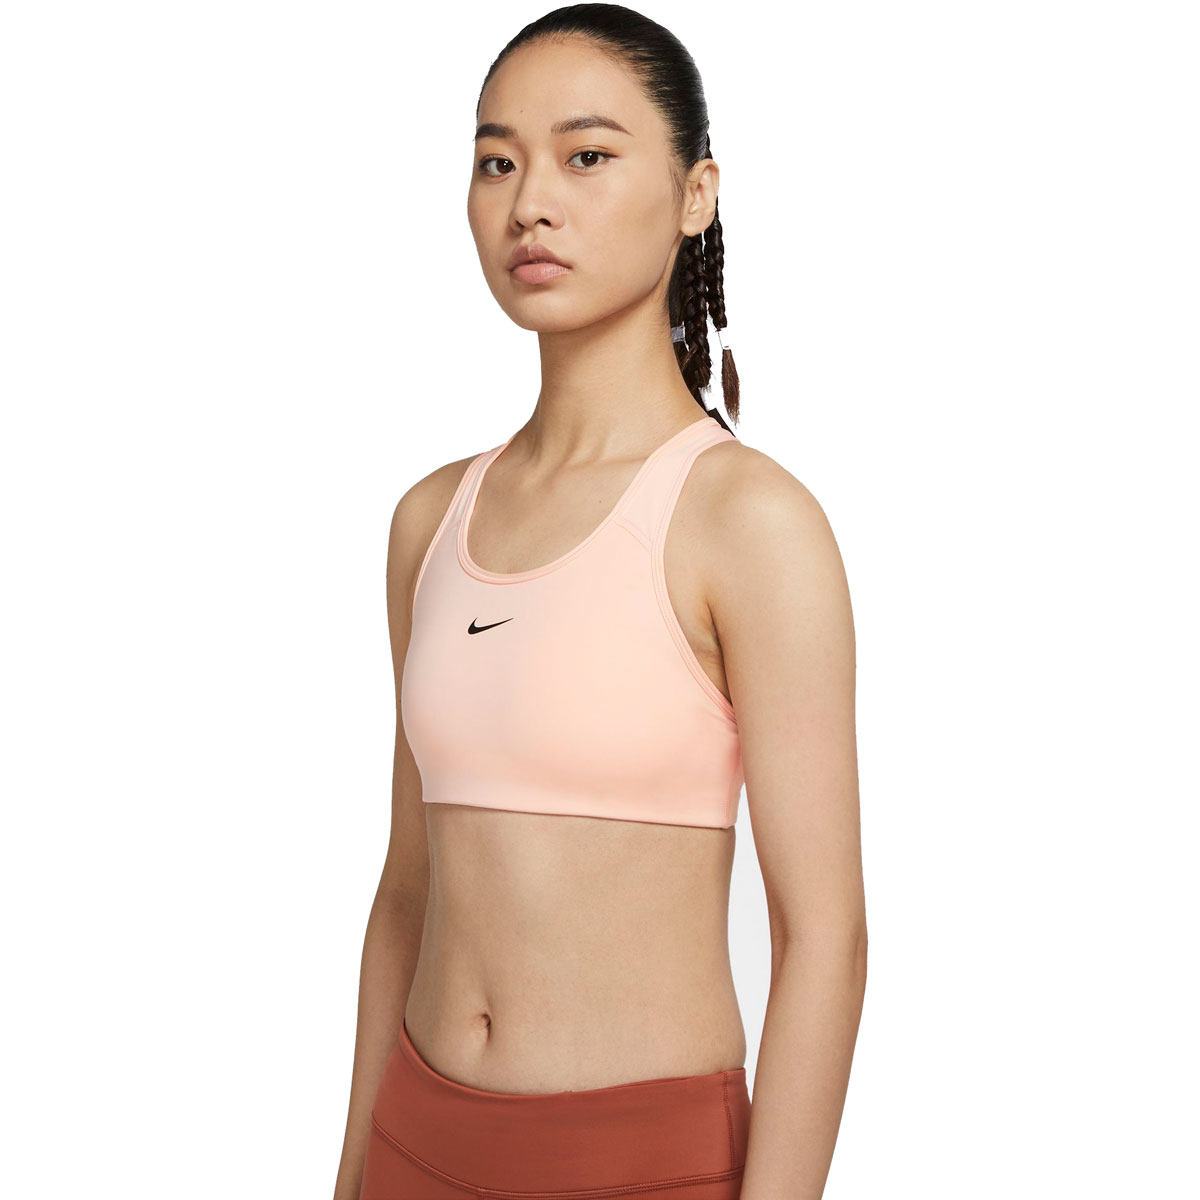 Women's Nike Swoosh Medium-Support 1-Piece Pad Sports Bra - Color: Washed Coral/Black - Size: S, Washed Coral/Black, large, image 1